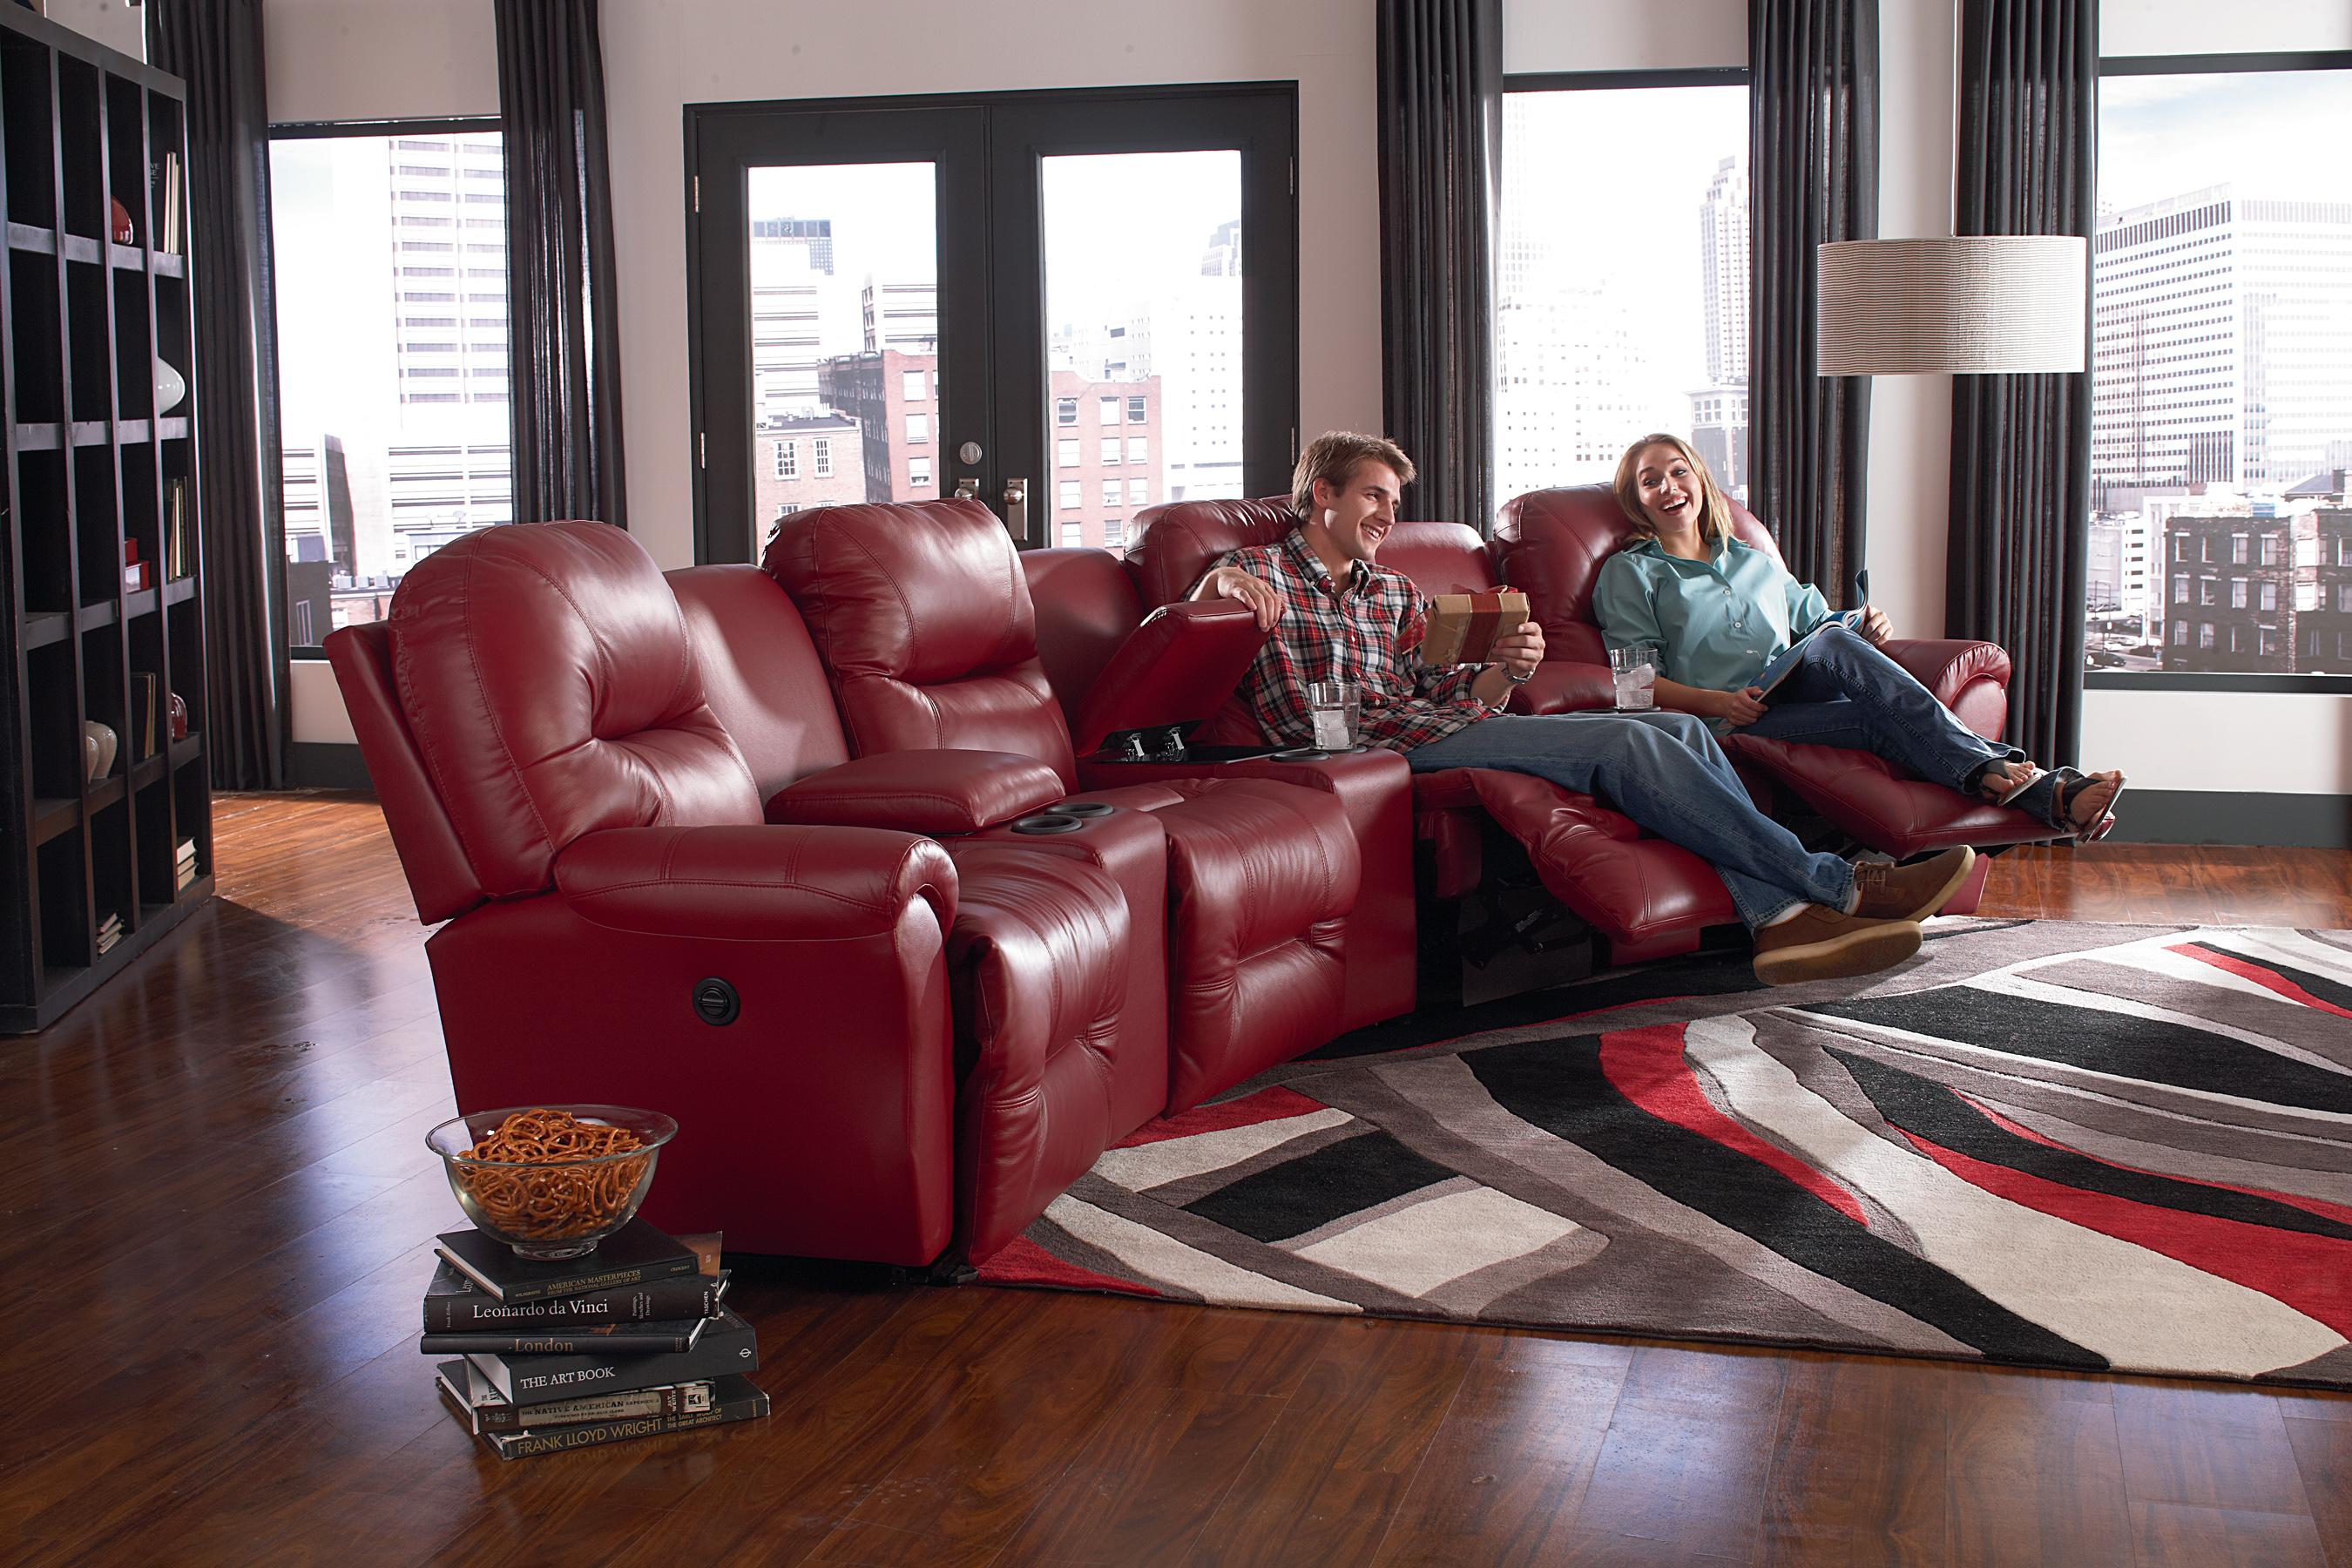 Best home furnishings bodie 4 seater power reclining home for Best home furnishings